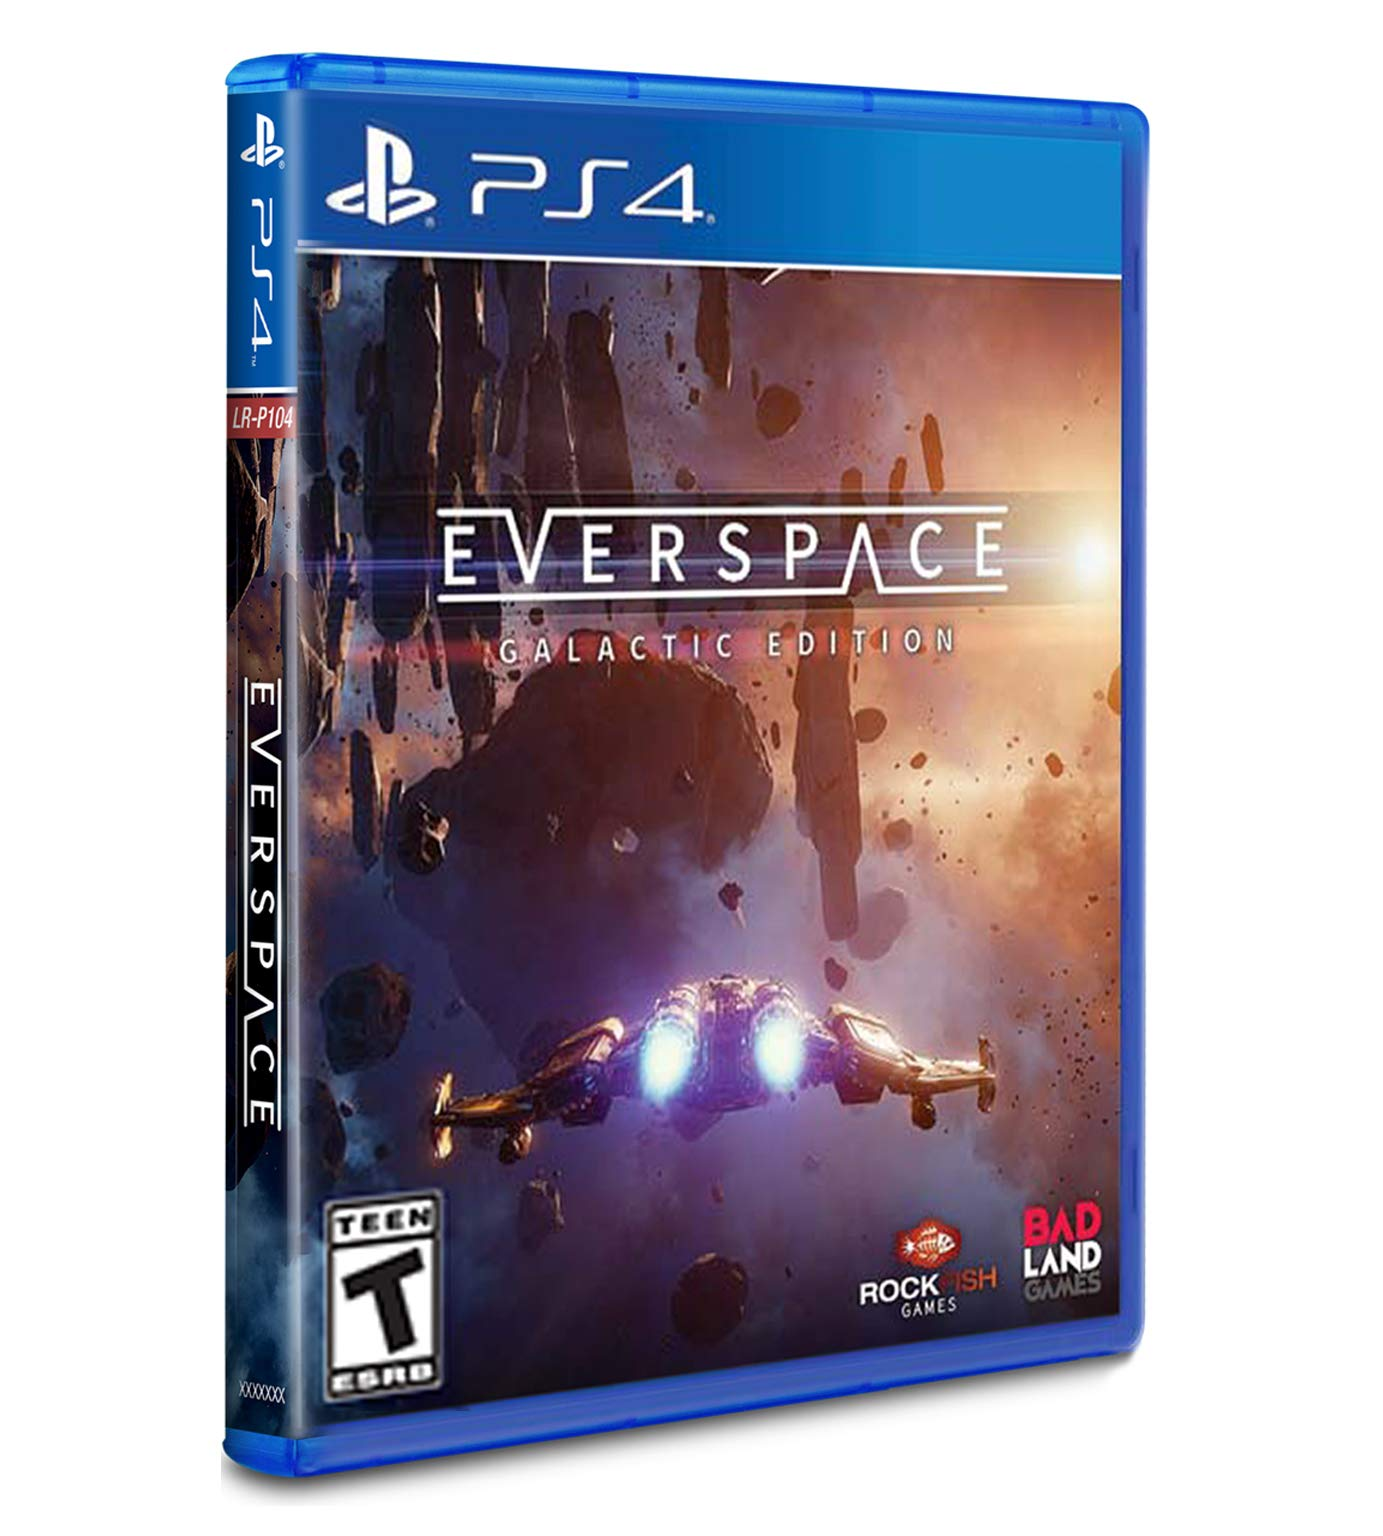 Everspace Galactic Edition For PS4 (Limited Run #168)